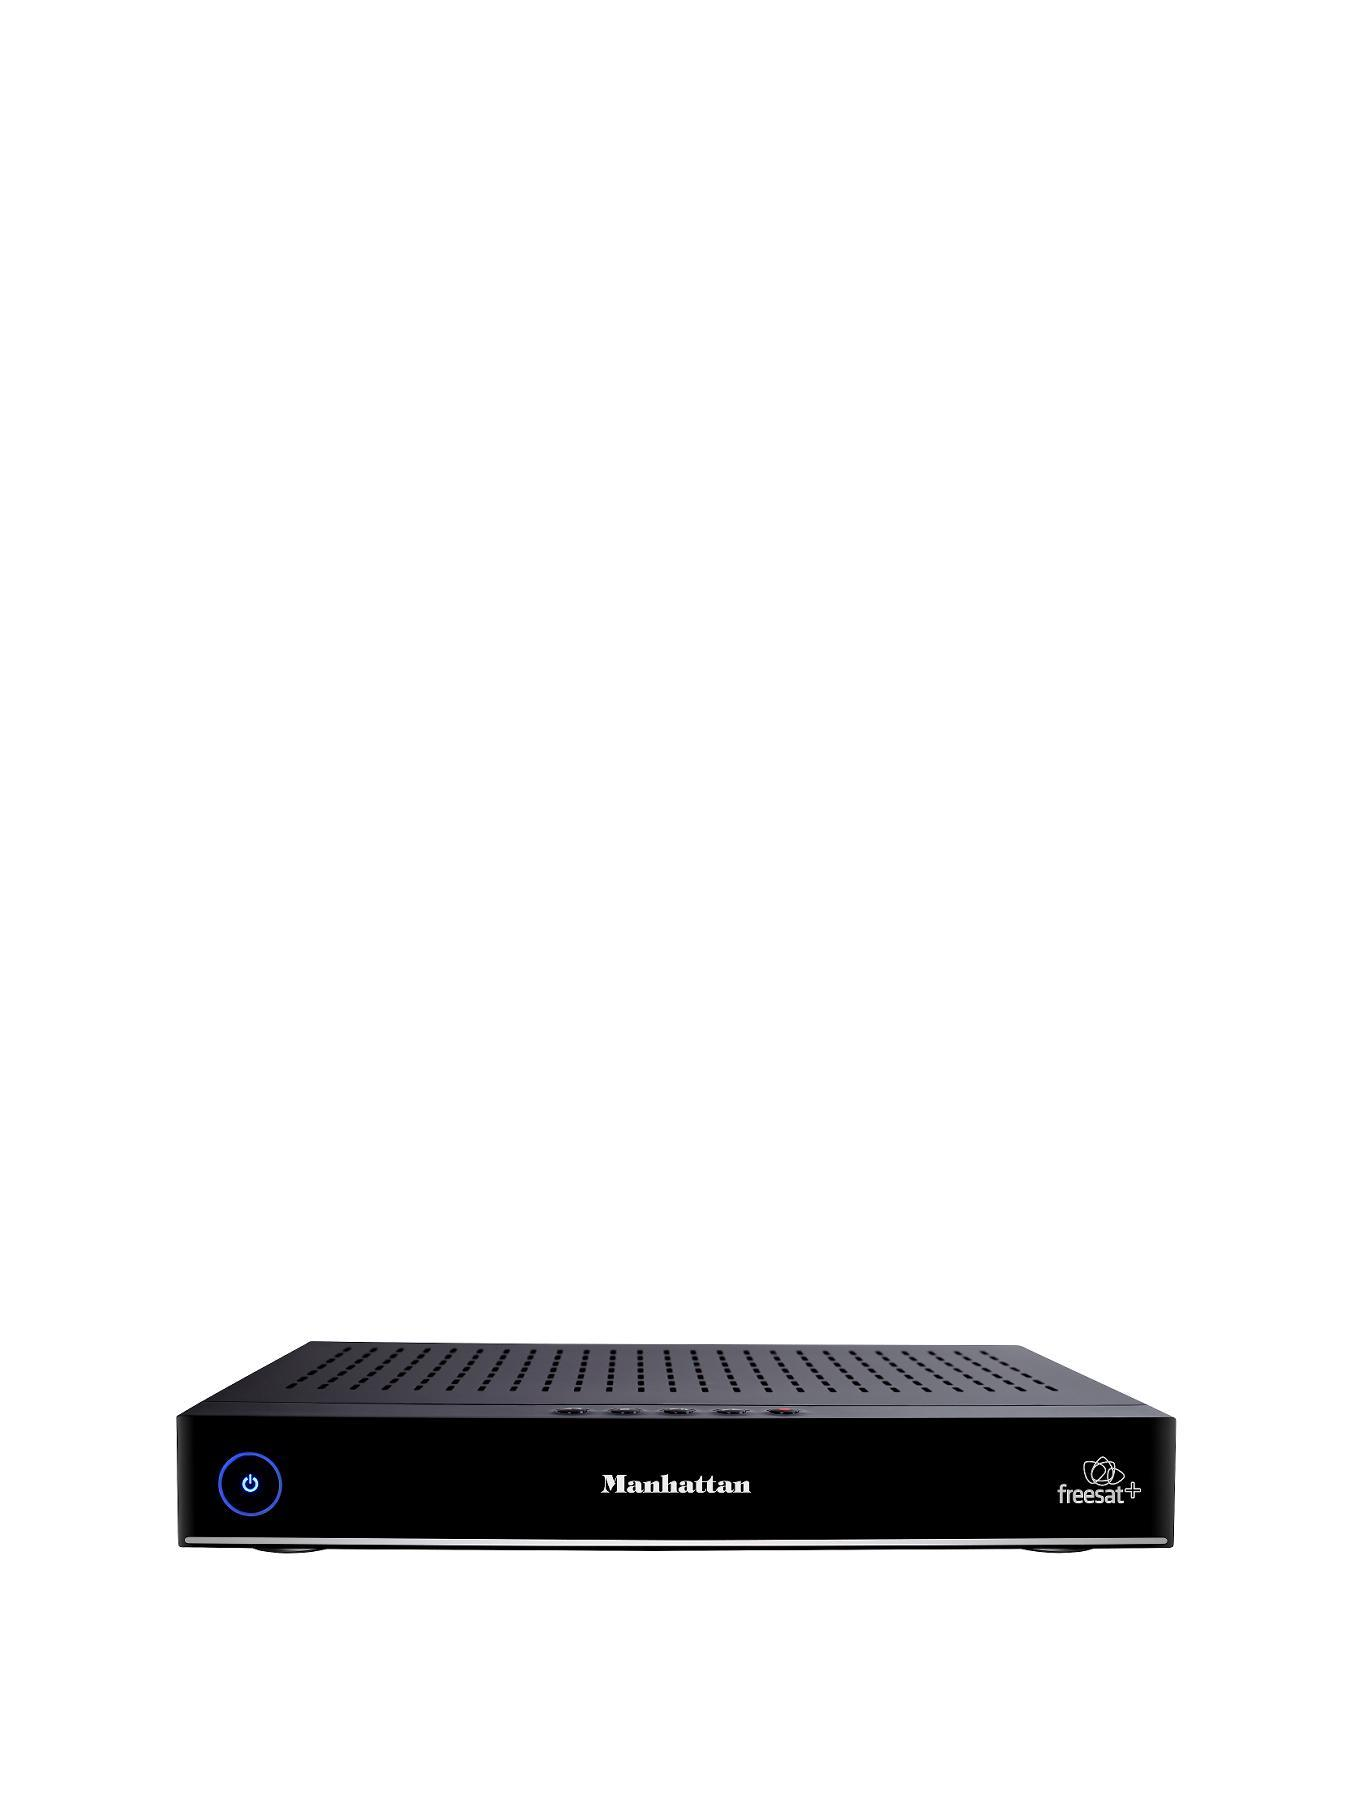 Manhattan Plaza HDR-S Freesat 500Gb HD Recorder